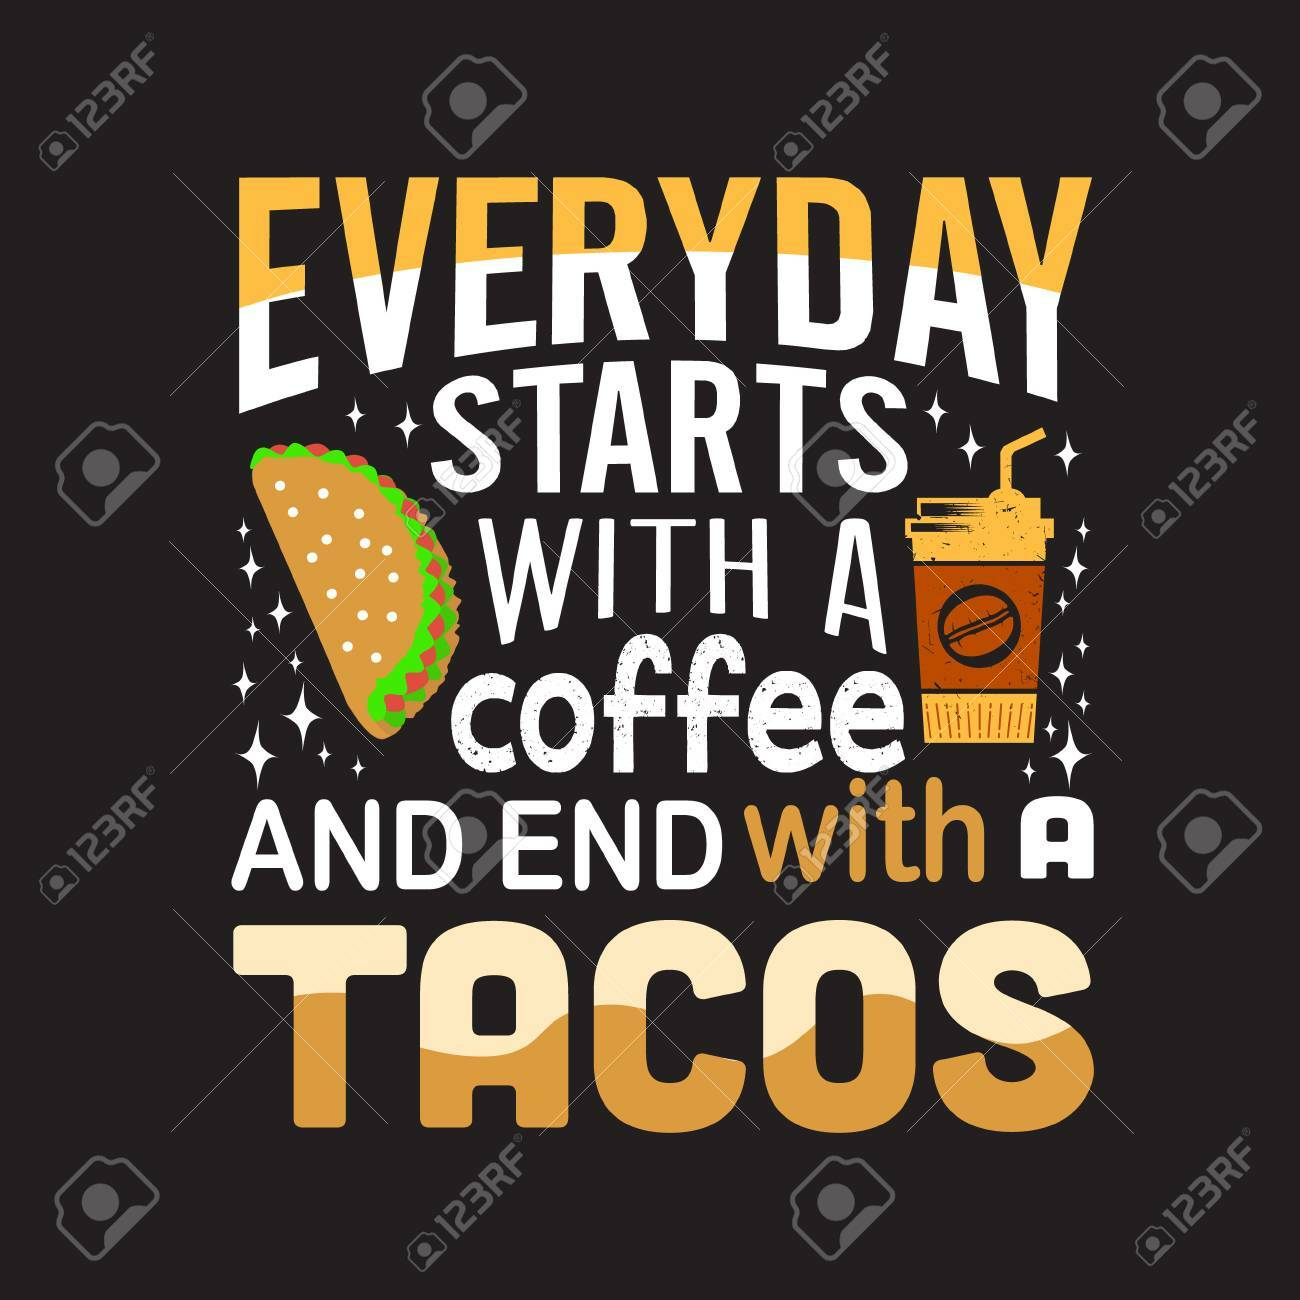 Coffee and Tacos